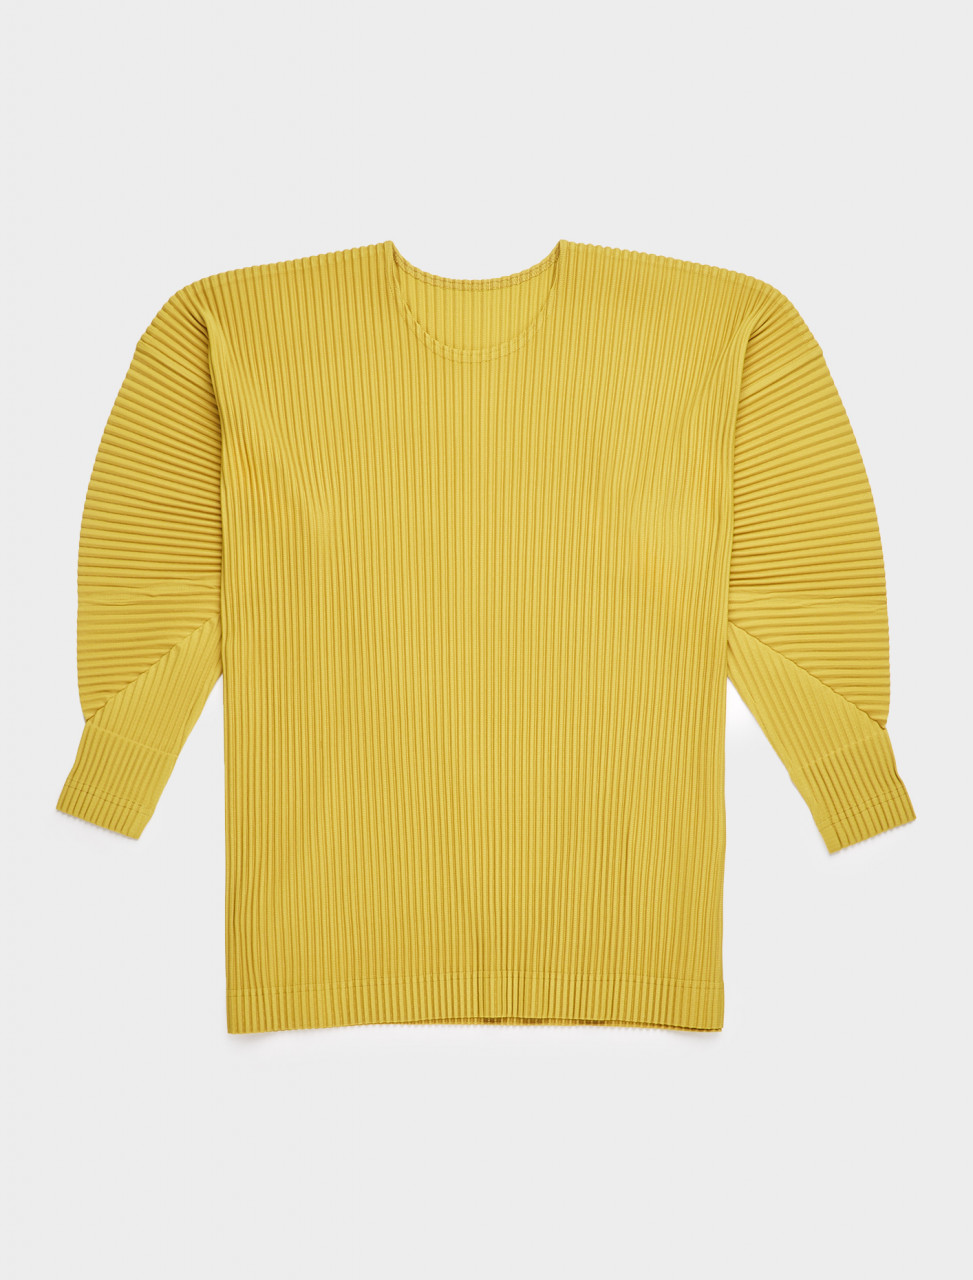 HP08JK117-53 HOMME PLISSE ISSEY MIYAKE LONG SLEEVE PLEATED TOP HERB YELLOW